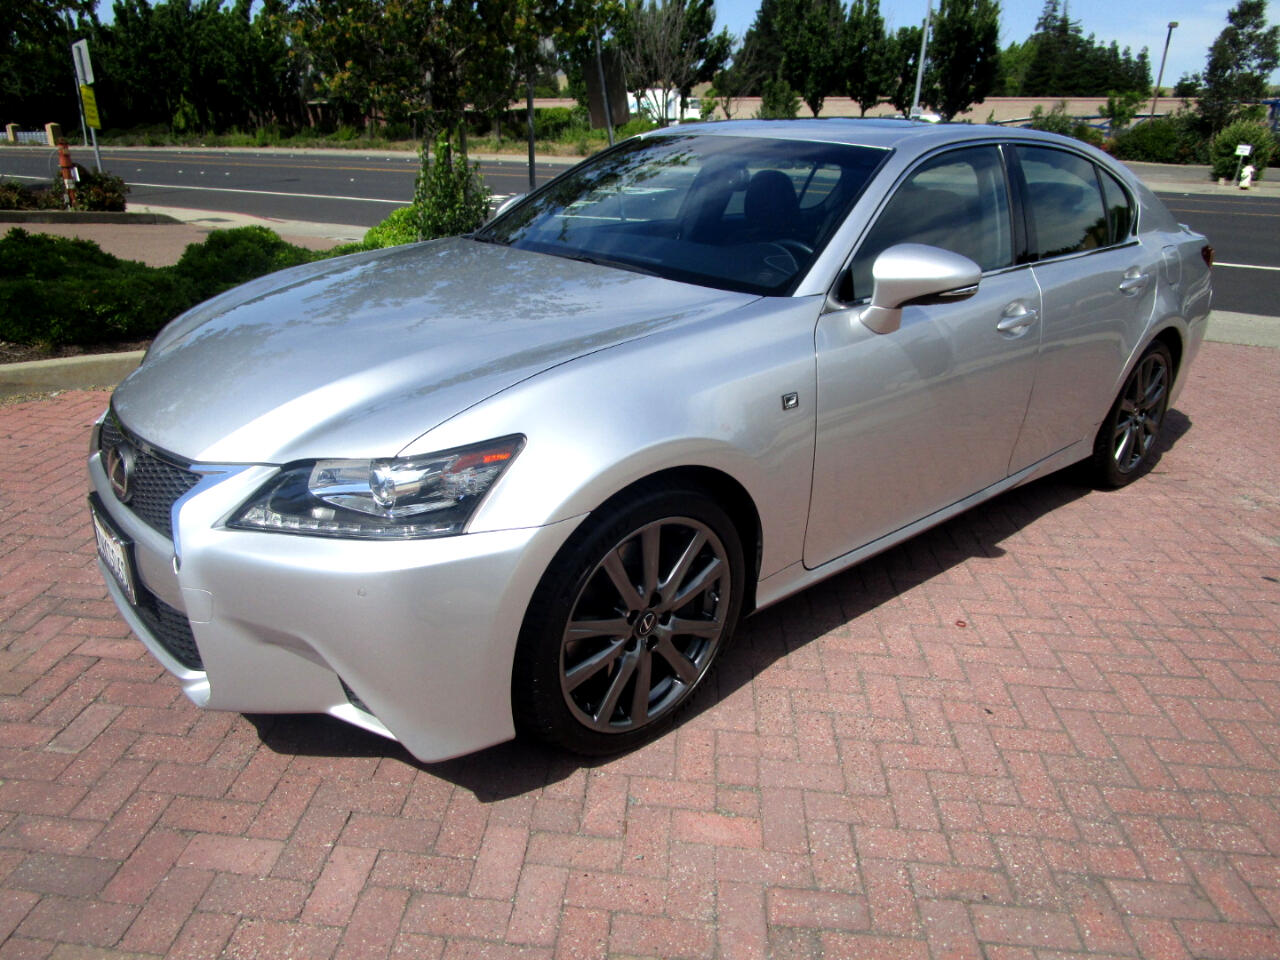 2015 Lexus GS 350 F SPORT**HEAT-AC SEATS**BLIND SPOT**NAV*SAT*CAMERA